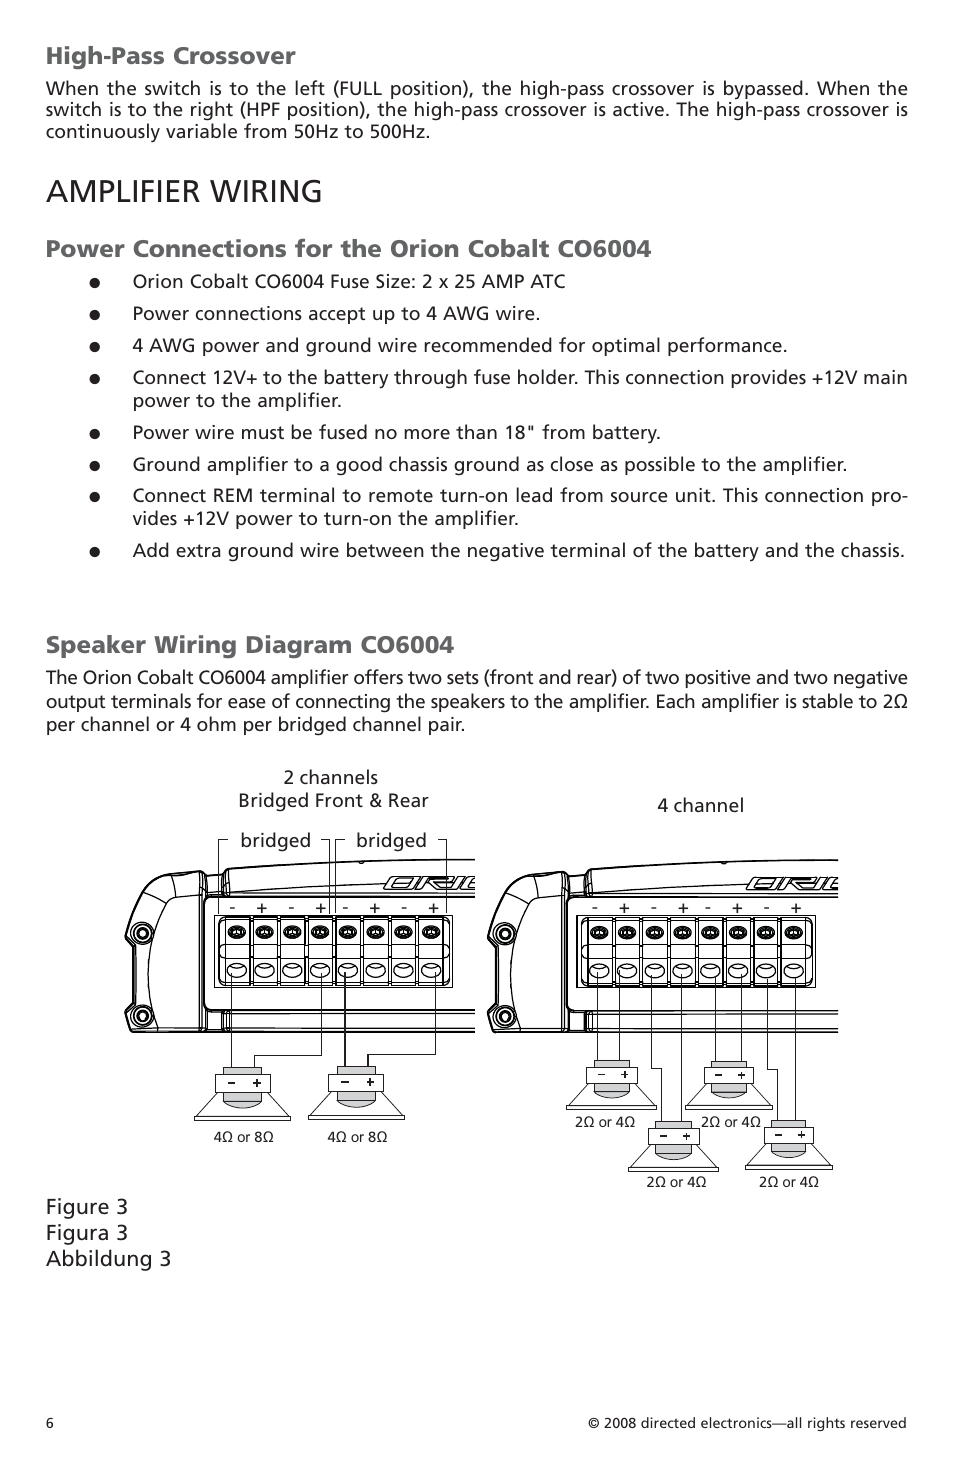 [WLLP_2054]   Amplifier wiring, High-pass crossover, Power connections for the orion  cobalt co6004 | Orion Car Audio CO6004 User Manual | Page 7 / 66 | Orion Car Stereo Wiring Diagram |  | Manuals Directory